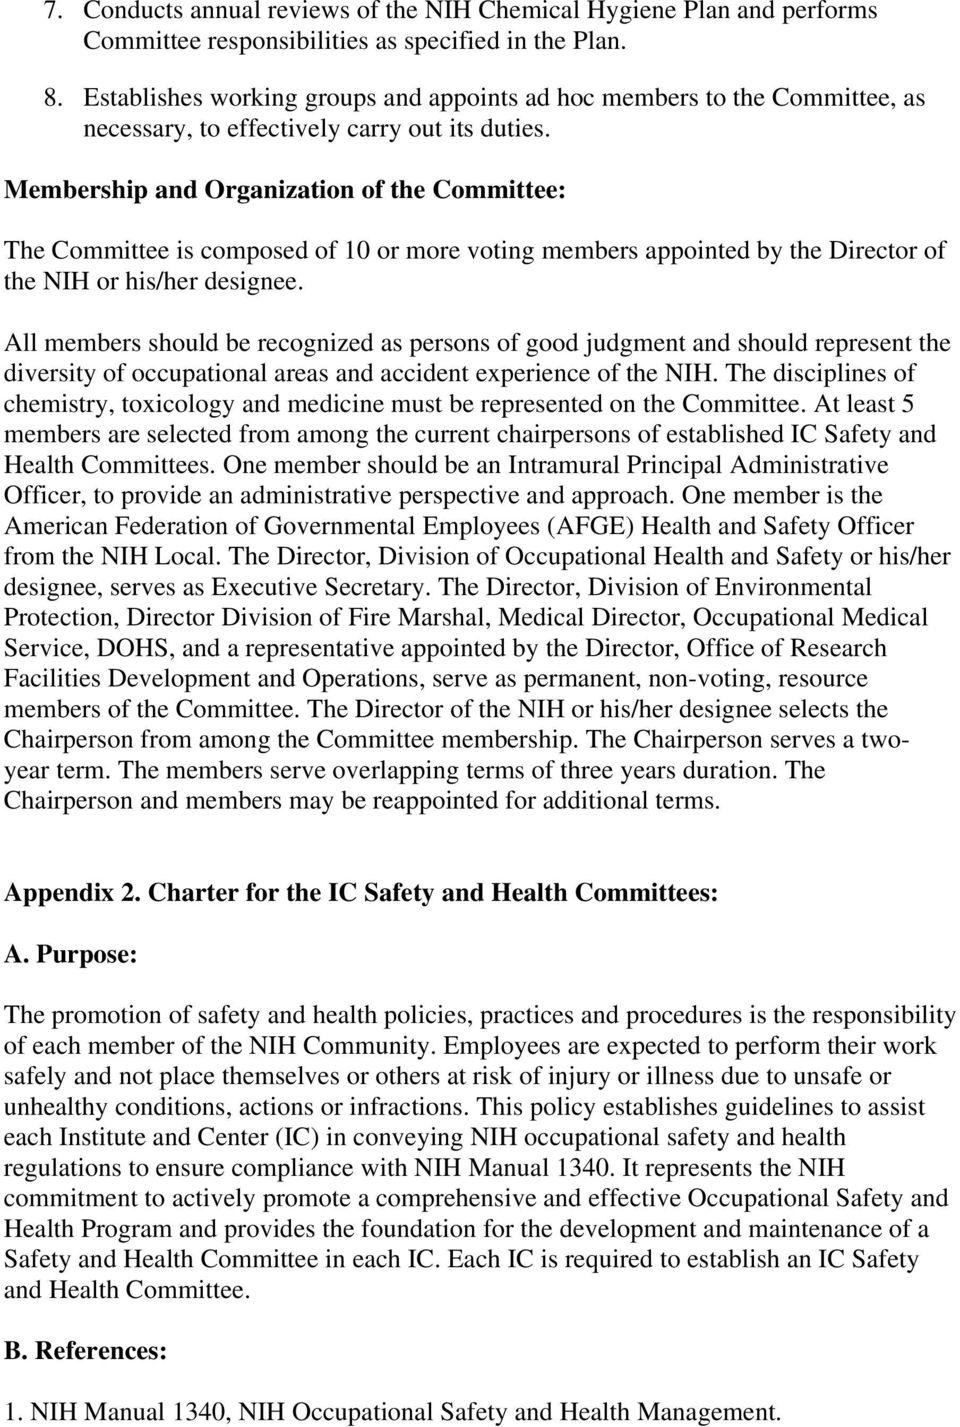 Membership and Organization of the Committee: The Committee is composed of 10 or more voting members appointed by the Director of the NIH or his/her designee.